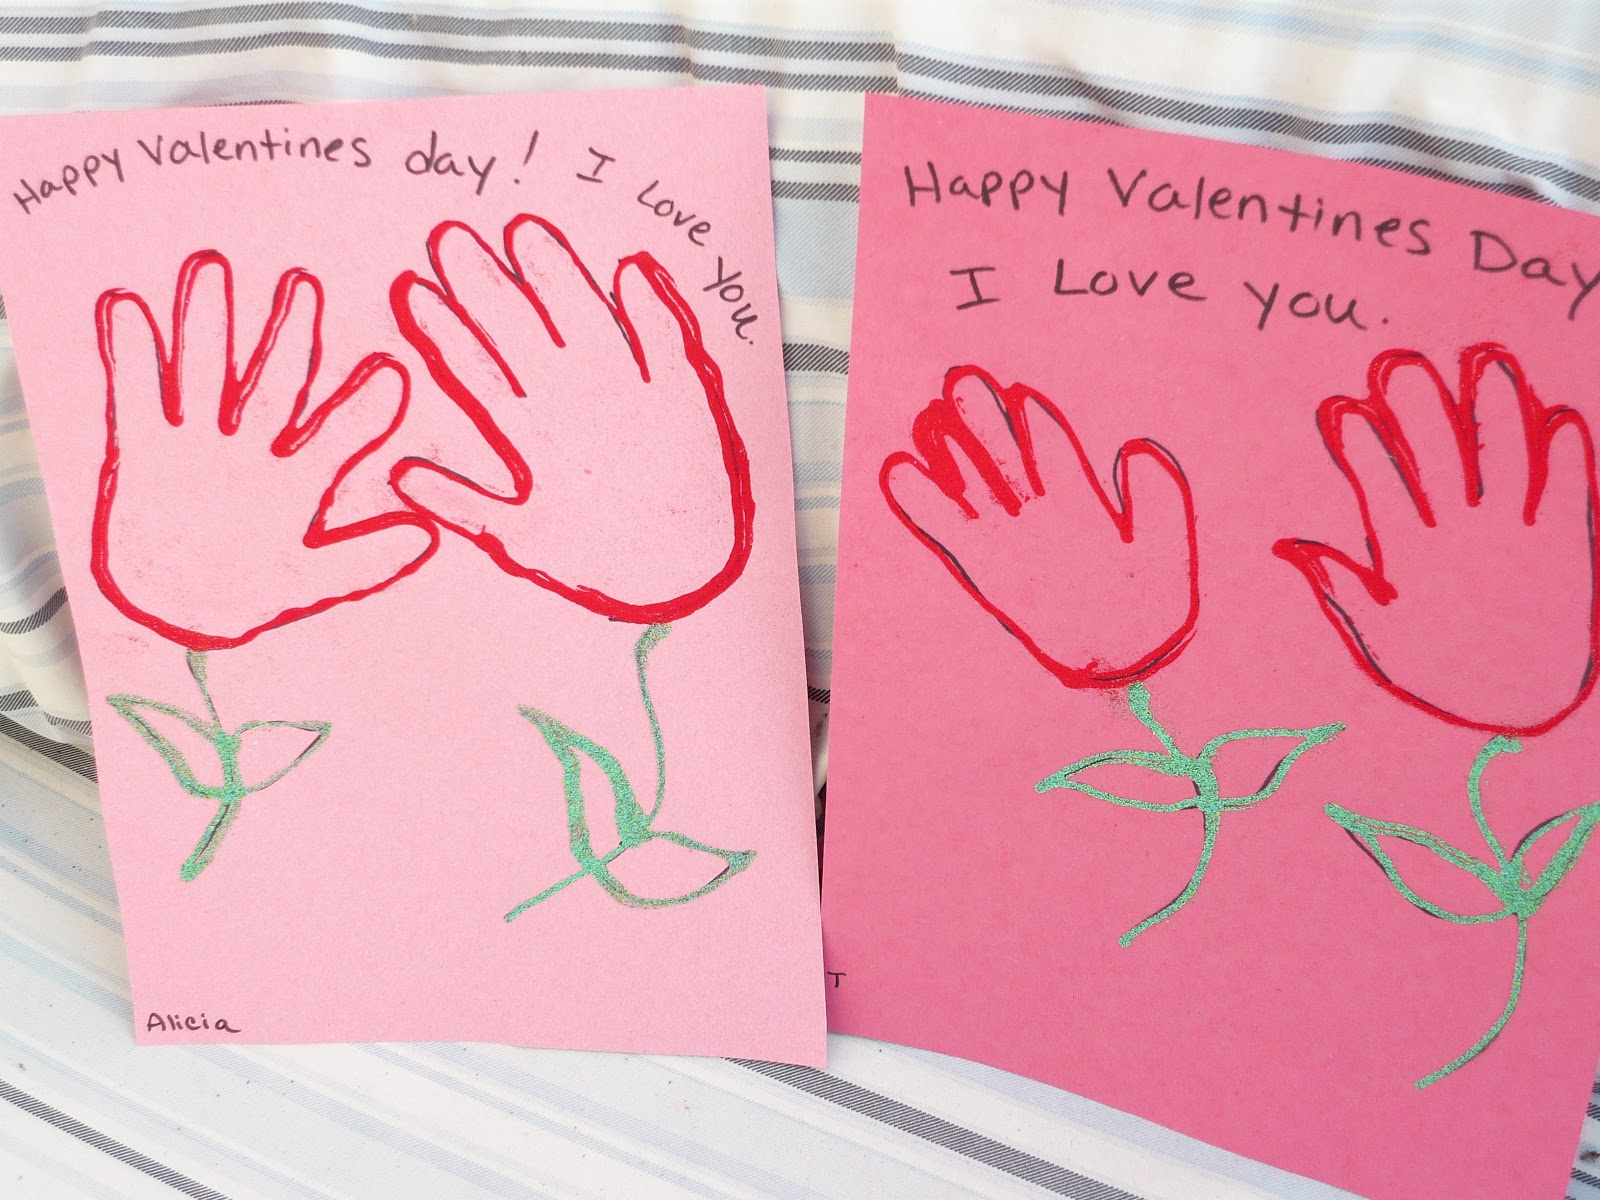 Childcare for Valentines day art and crafts for preschoolers